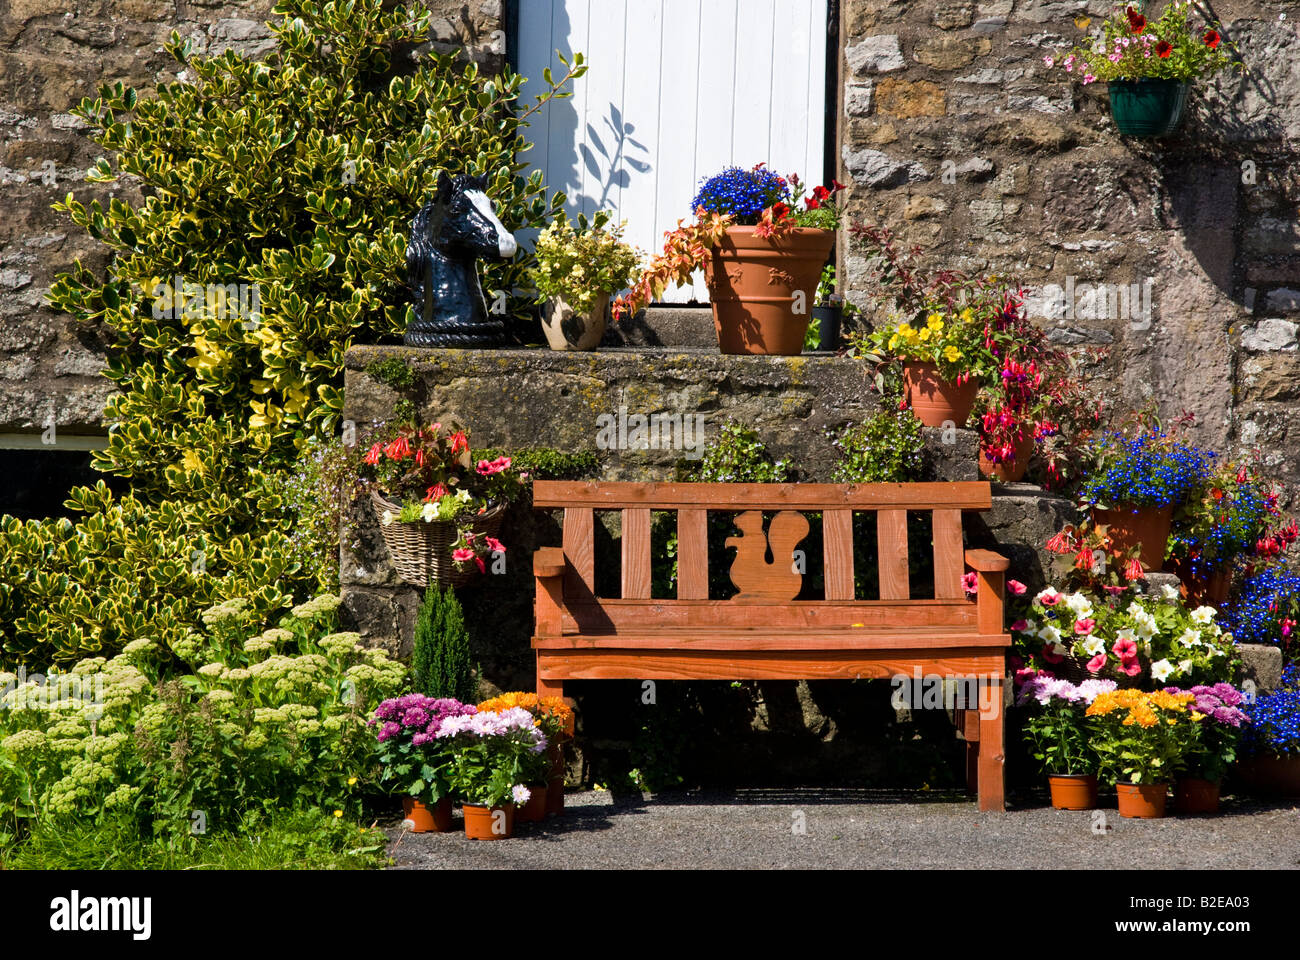 Empty bench surrounded with potted plants, Kirkby Lonsdale, Combria, England - Stock Image